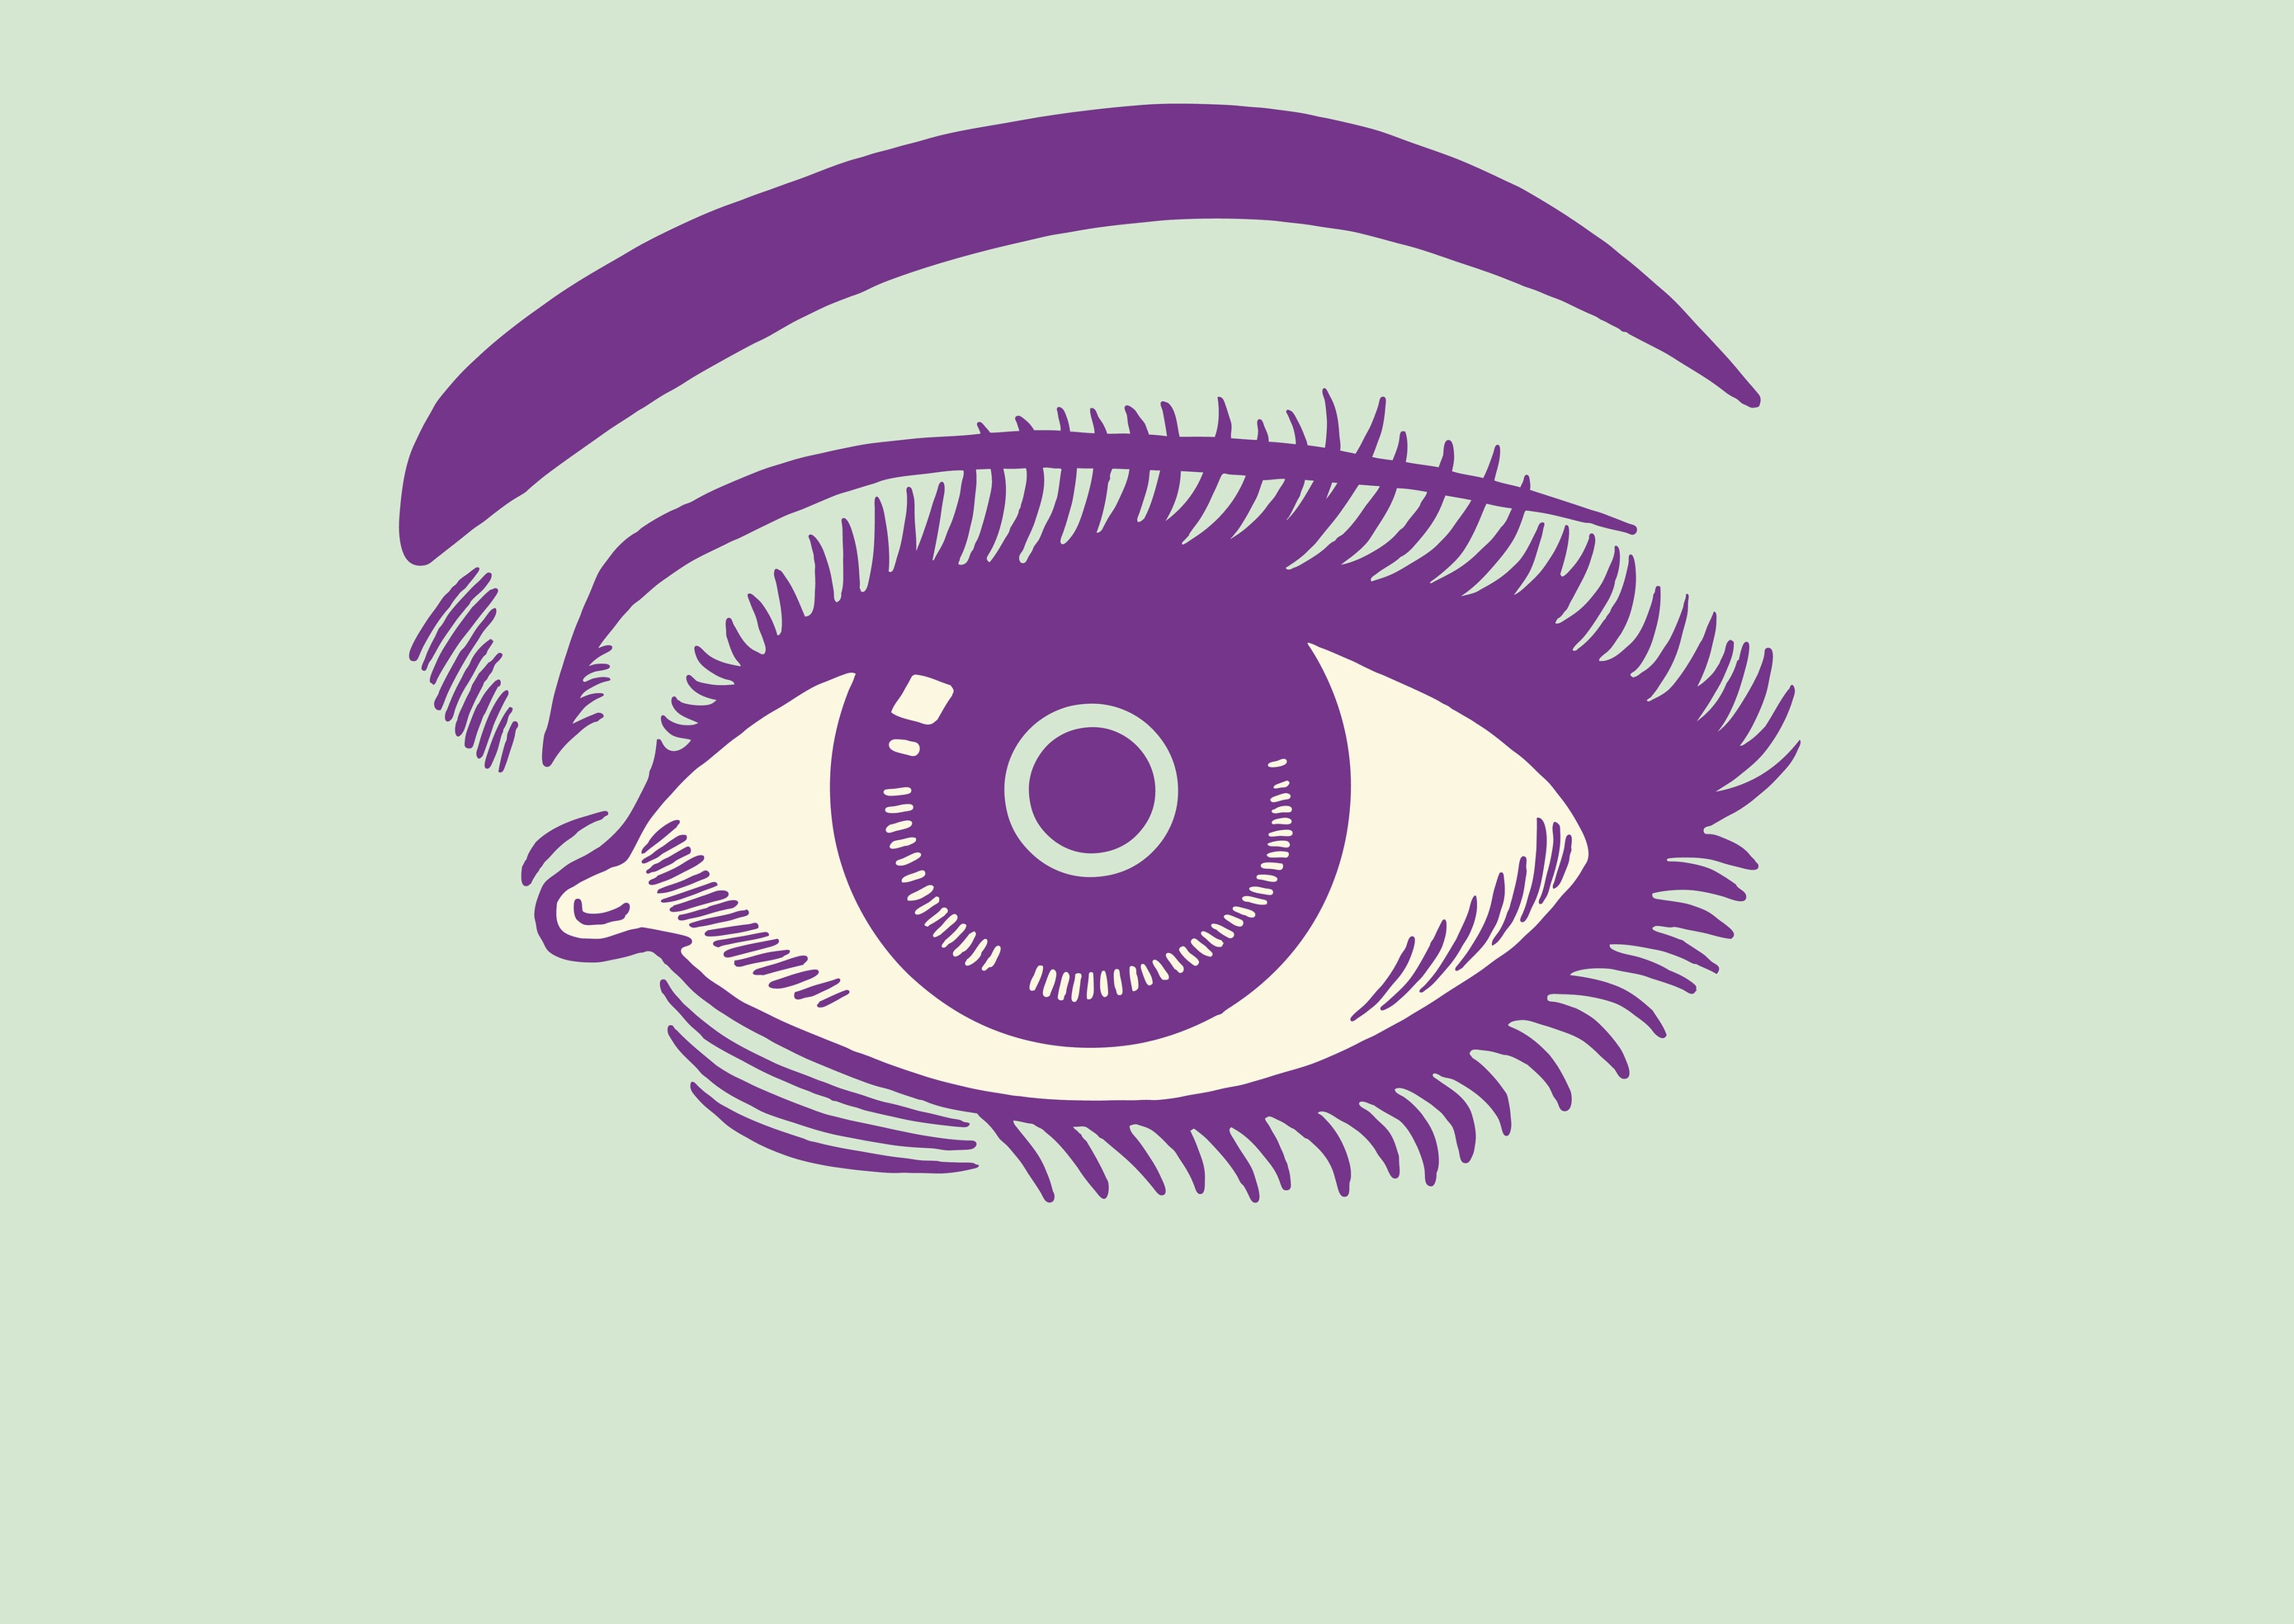 CEM maturity model pt 1: Assessing your customer-centric vision